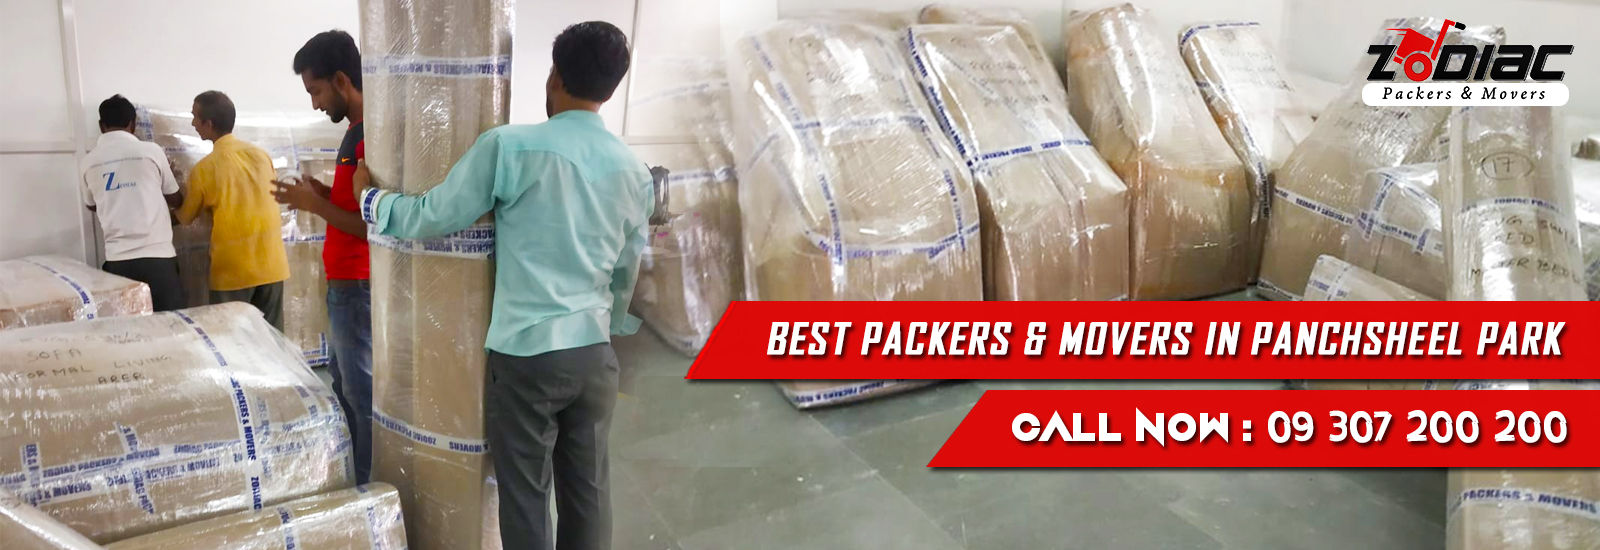 Packers and Movers in Panchsheel Park